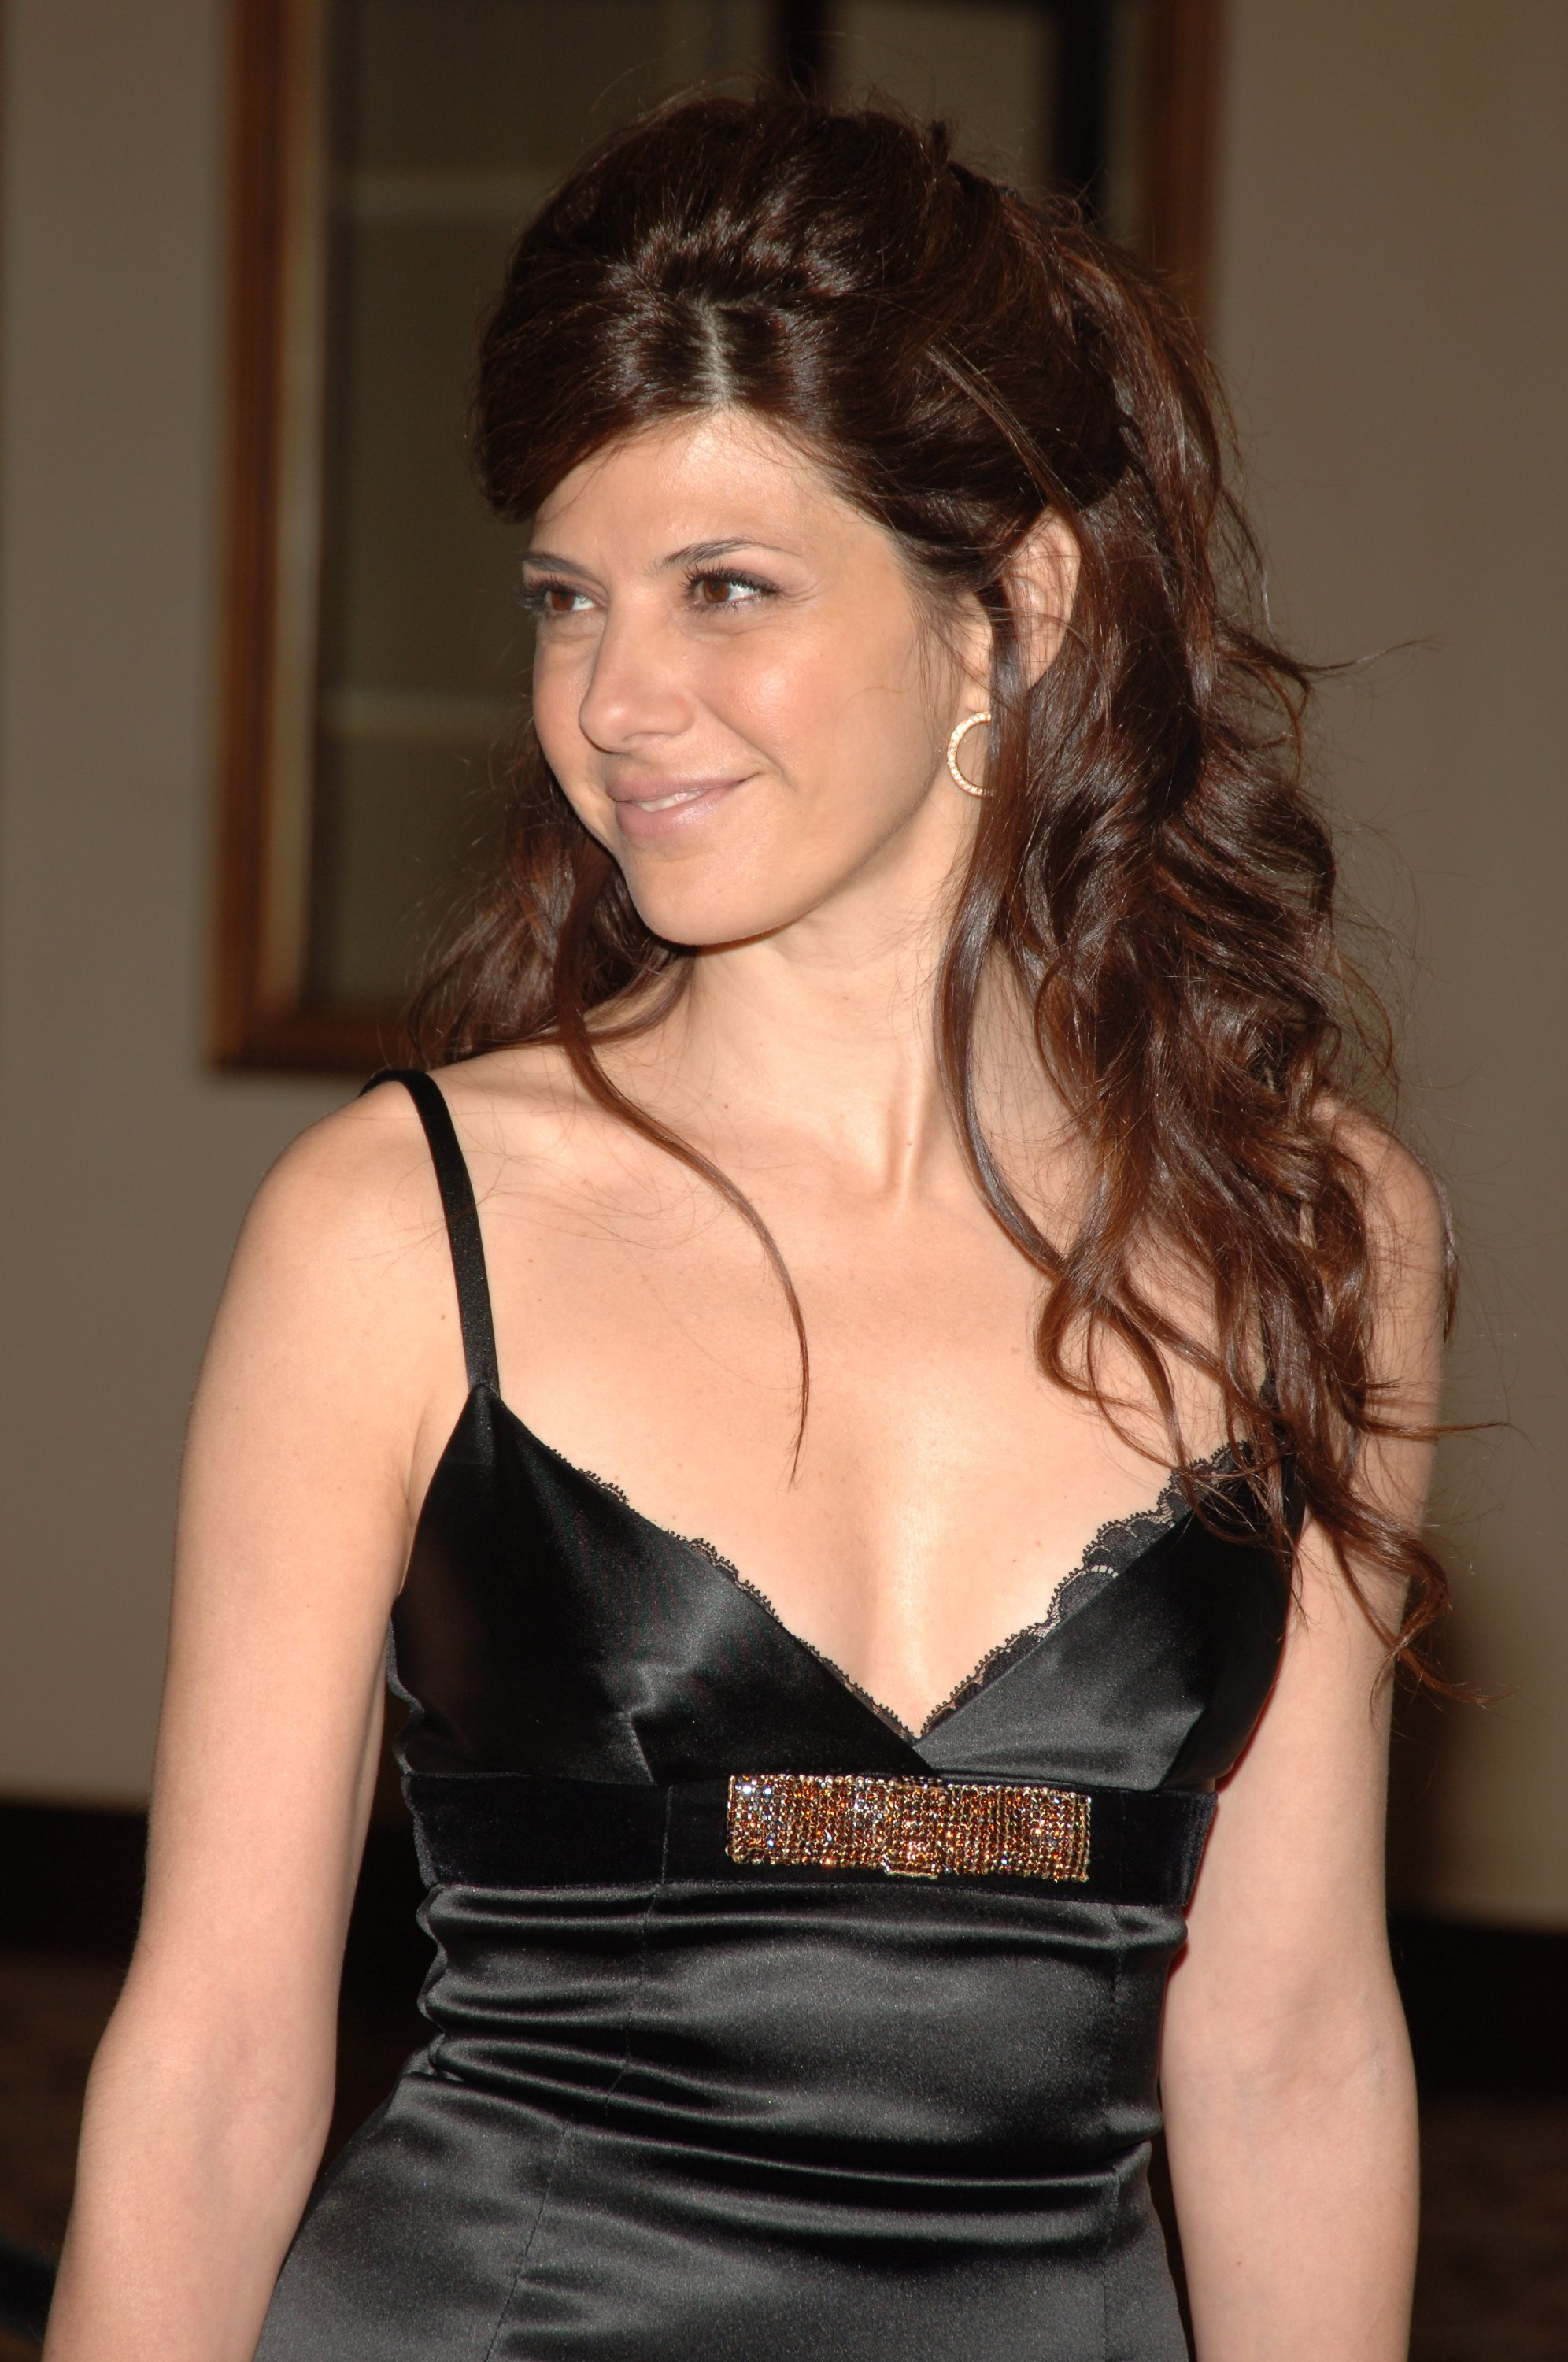 Are marisa tomei naked